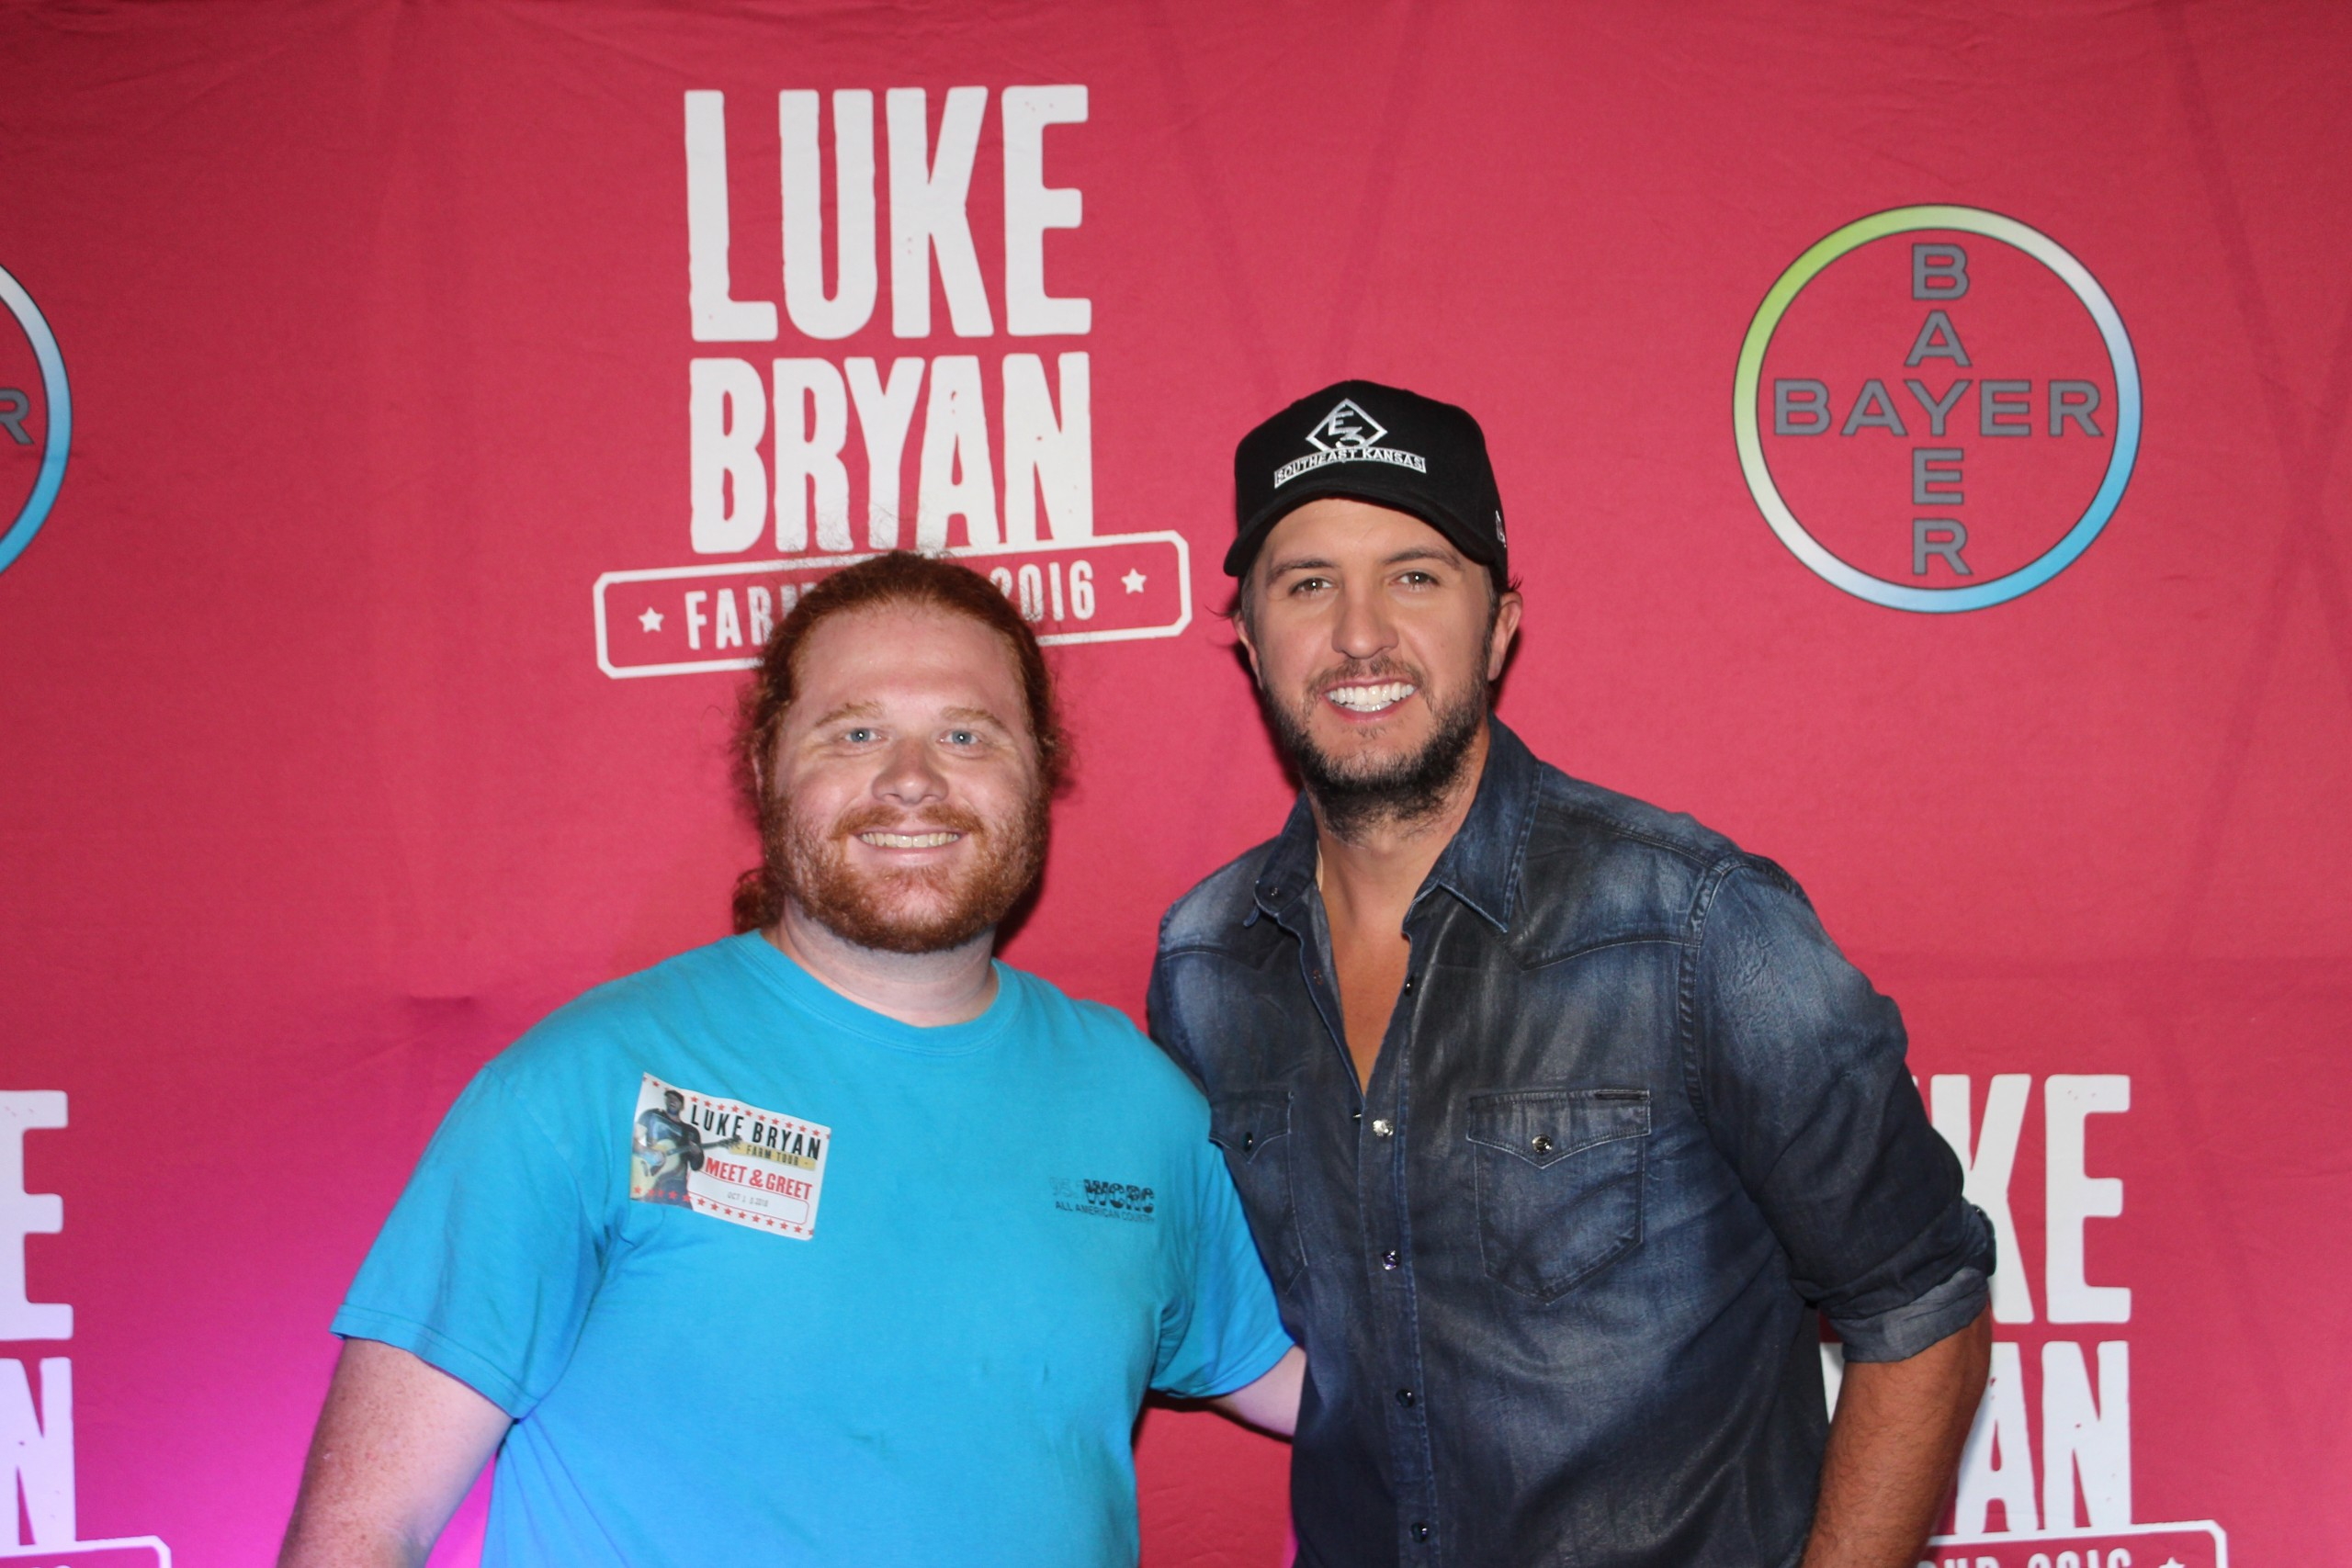 Great success with luke bryan farm tour in effingham effingham radio the luke bryan farm tour hit effingham saturday night with all the excitement that comes with it first of all thanks to everyone who came out and stopped m4hsunfo